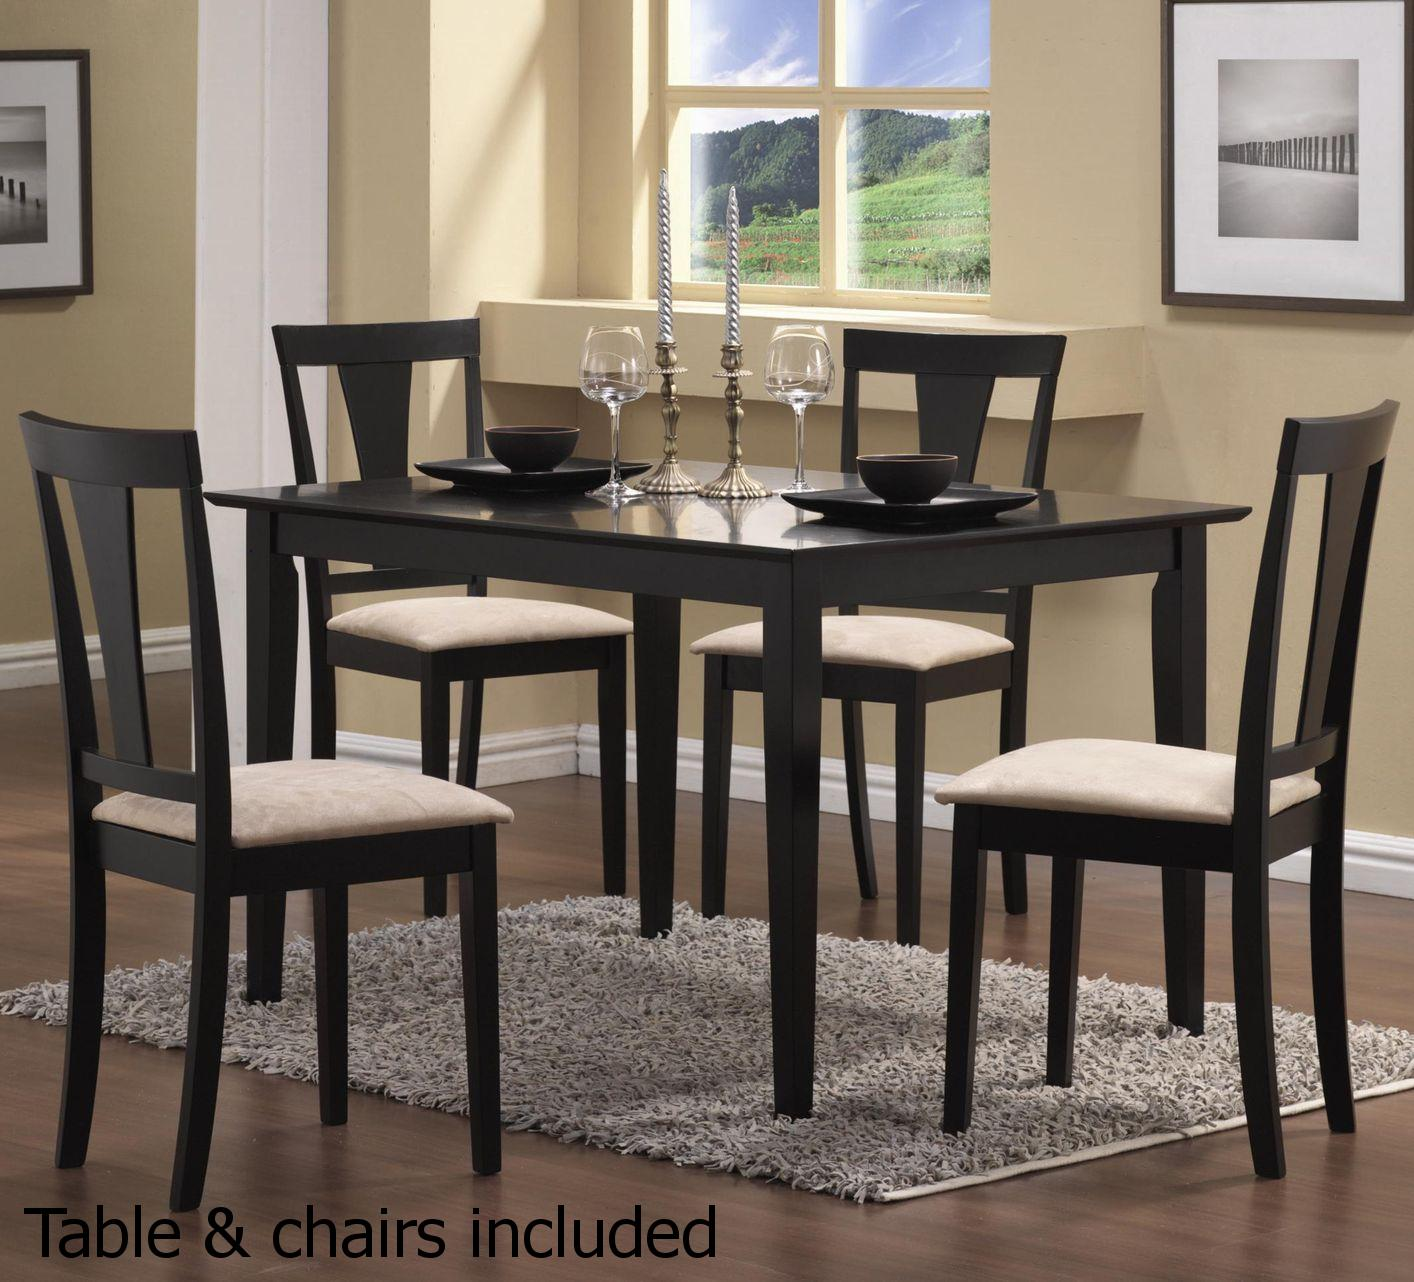 Dark Wood Dining Set: Steal-A-Sofa Furniture Outlet Los Angeles CA